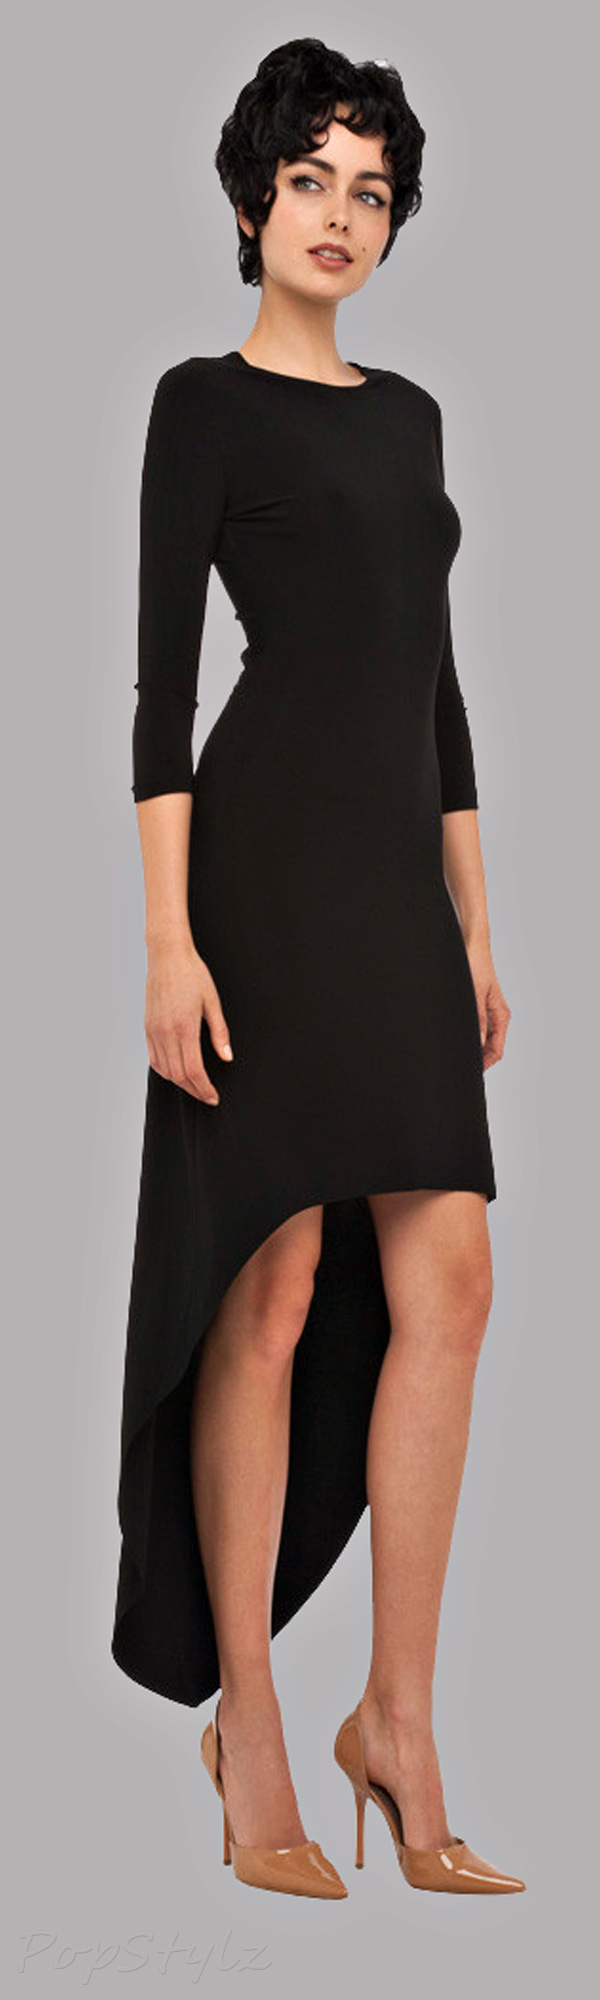 KAMALIKULTURE Crew Neck High Low Dress